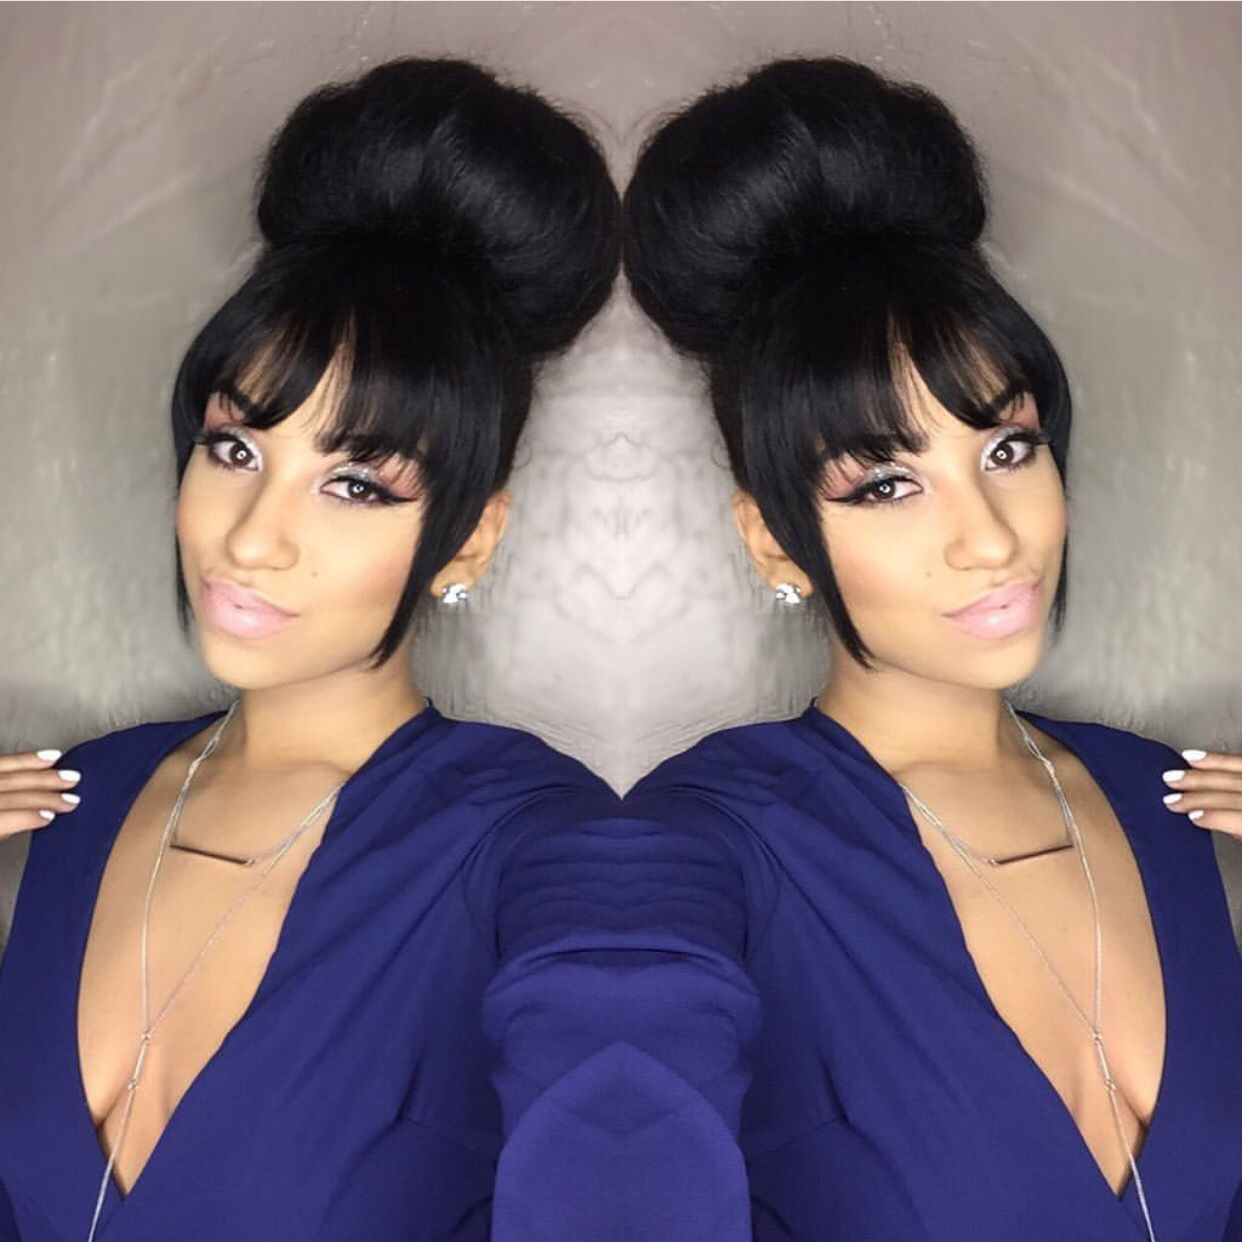 Bun X Bangs Natural Hair Styles Short Hair Styles Ponytail Hairstyles